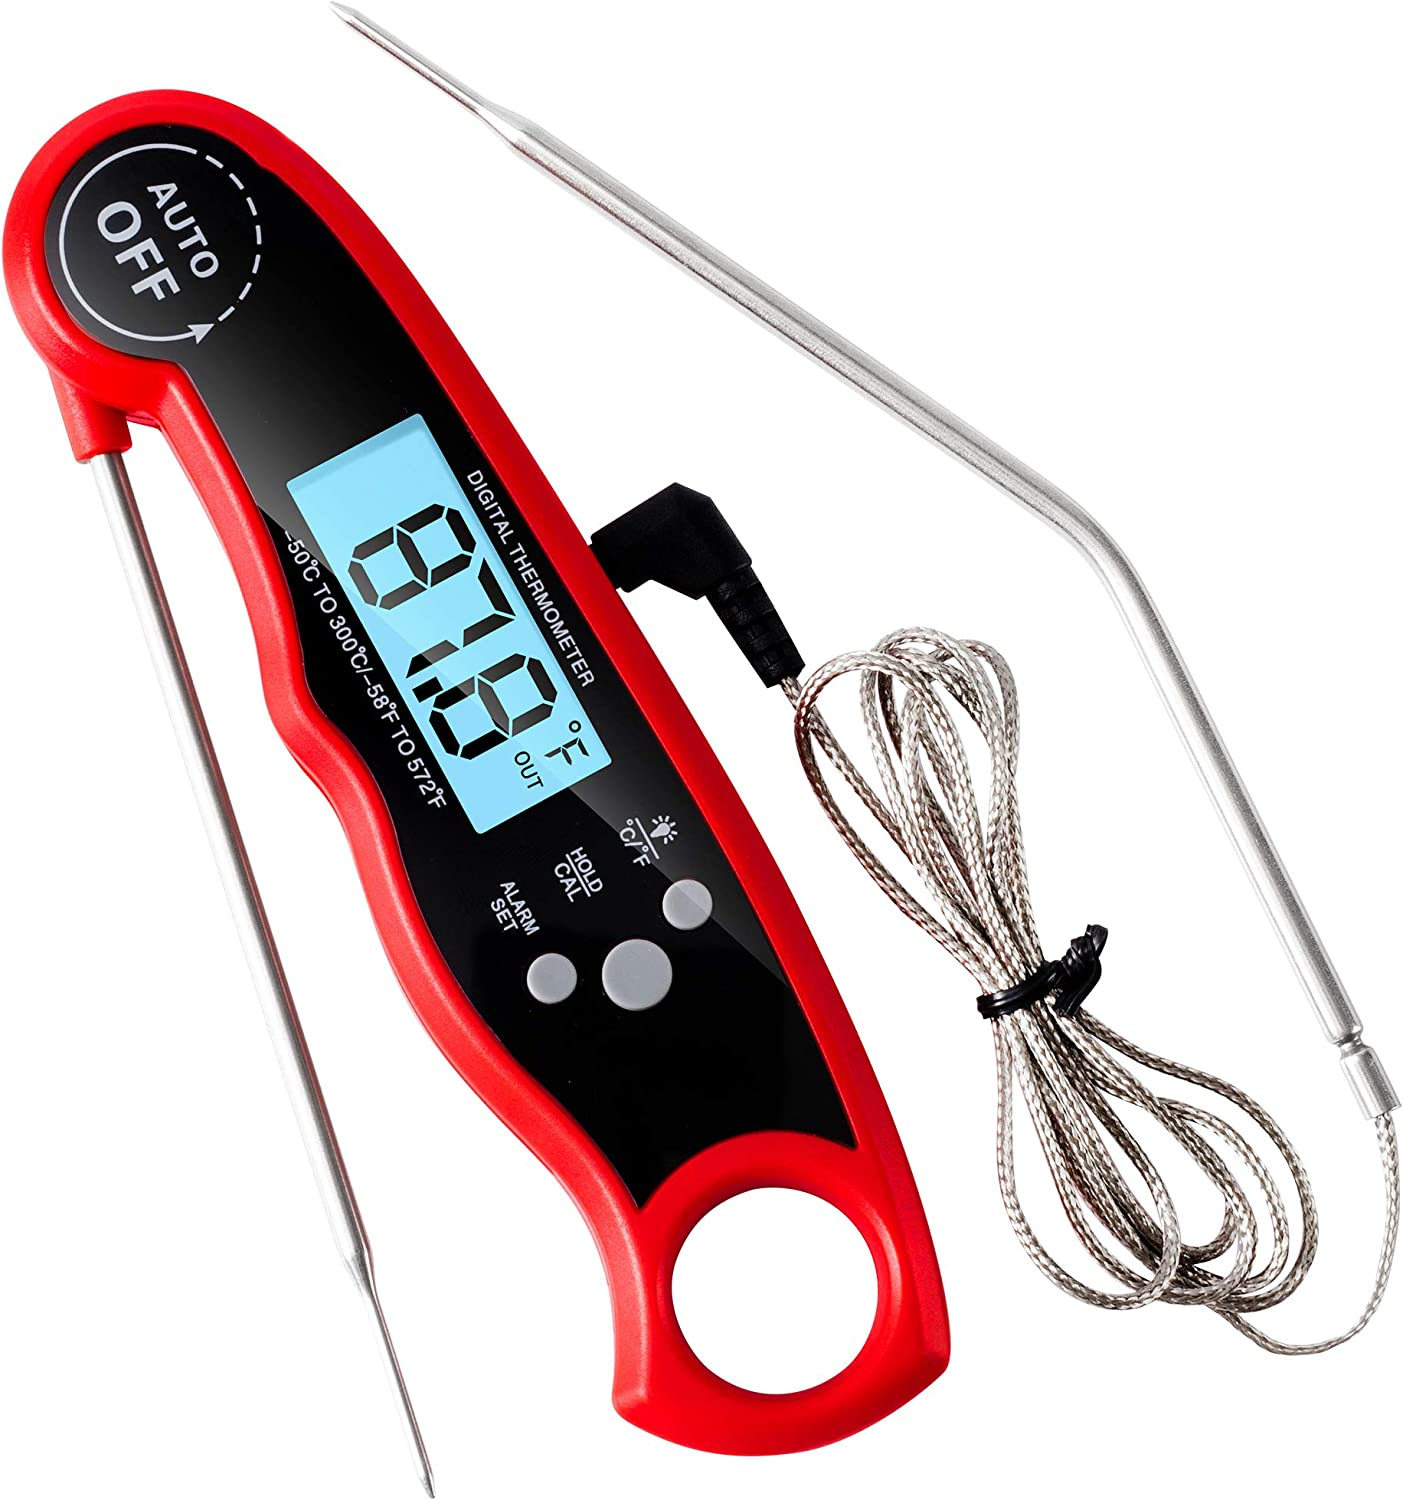 Olaosiry Meat Thermometer for Food Cooking- Digital Probe Thermometer Instant Read Grilling Thermometer Oven Safe - Dual Probe Thermometer for Turkey BBQ with Alarm (Red)